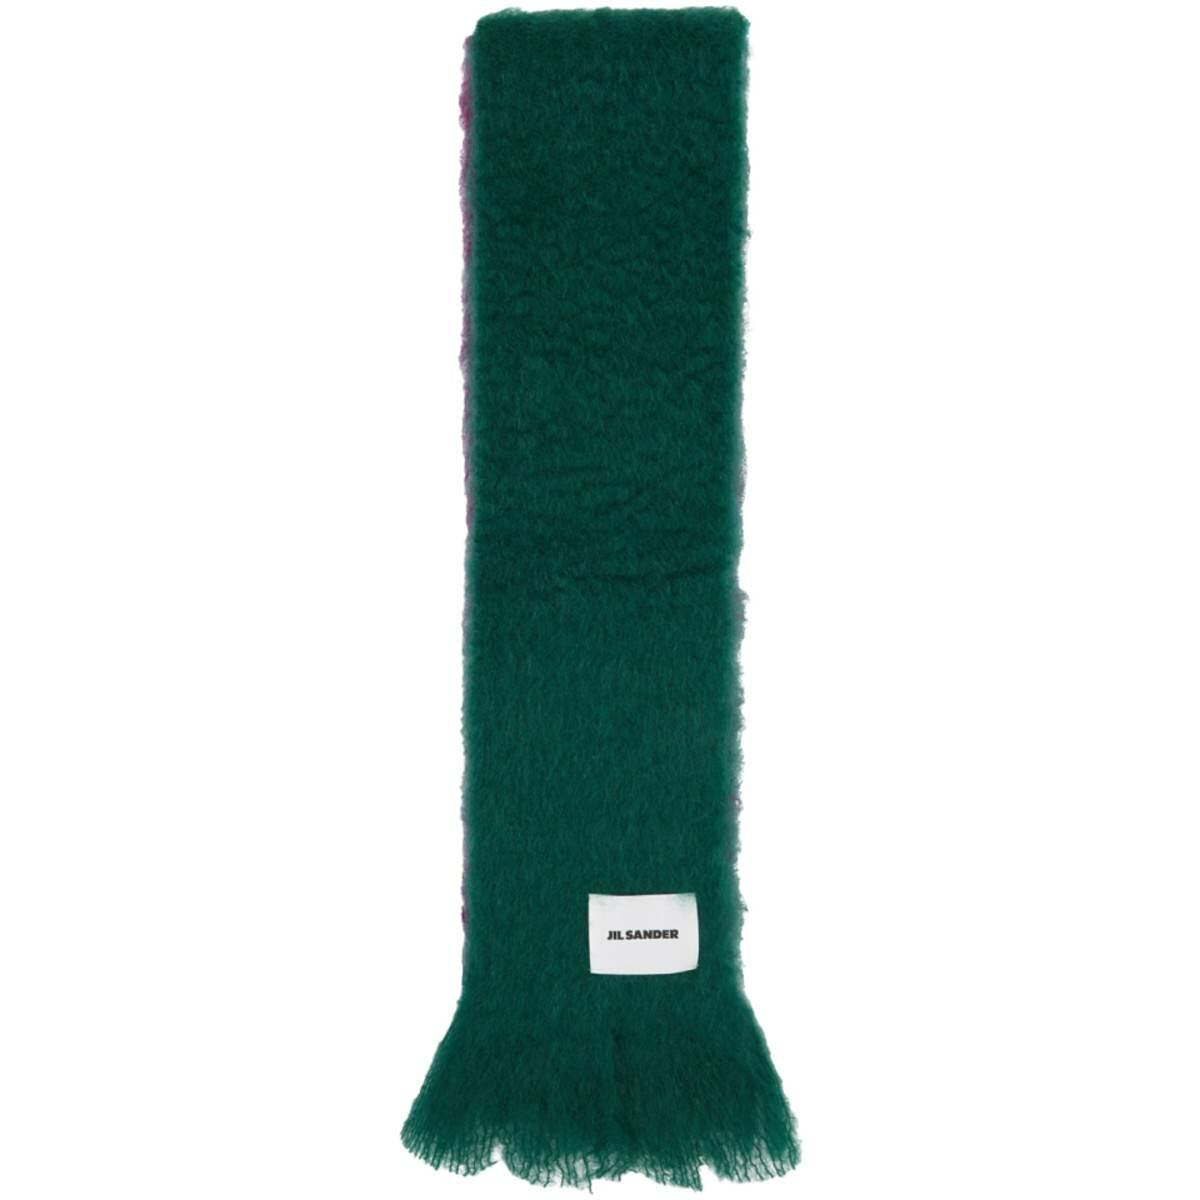 Jil Sander Green and Purple Mohair Scarf Ssense USA MEN Men ACCESSORIES Mens SCARFS